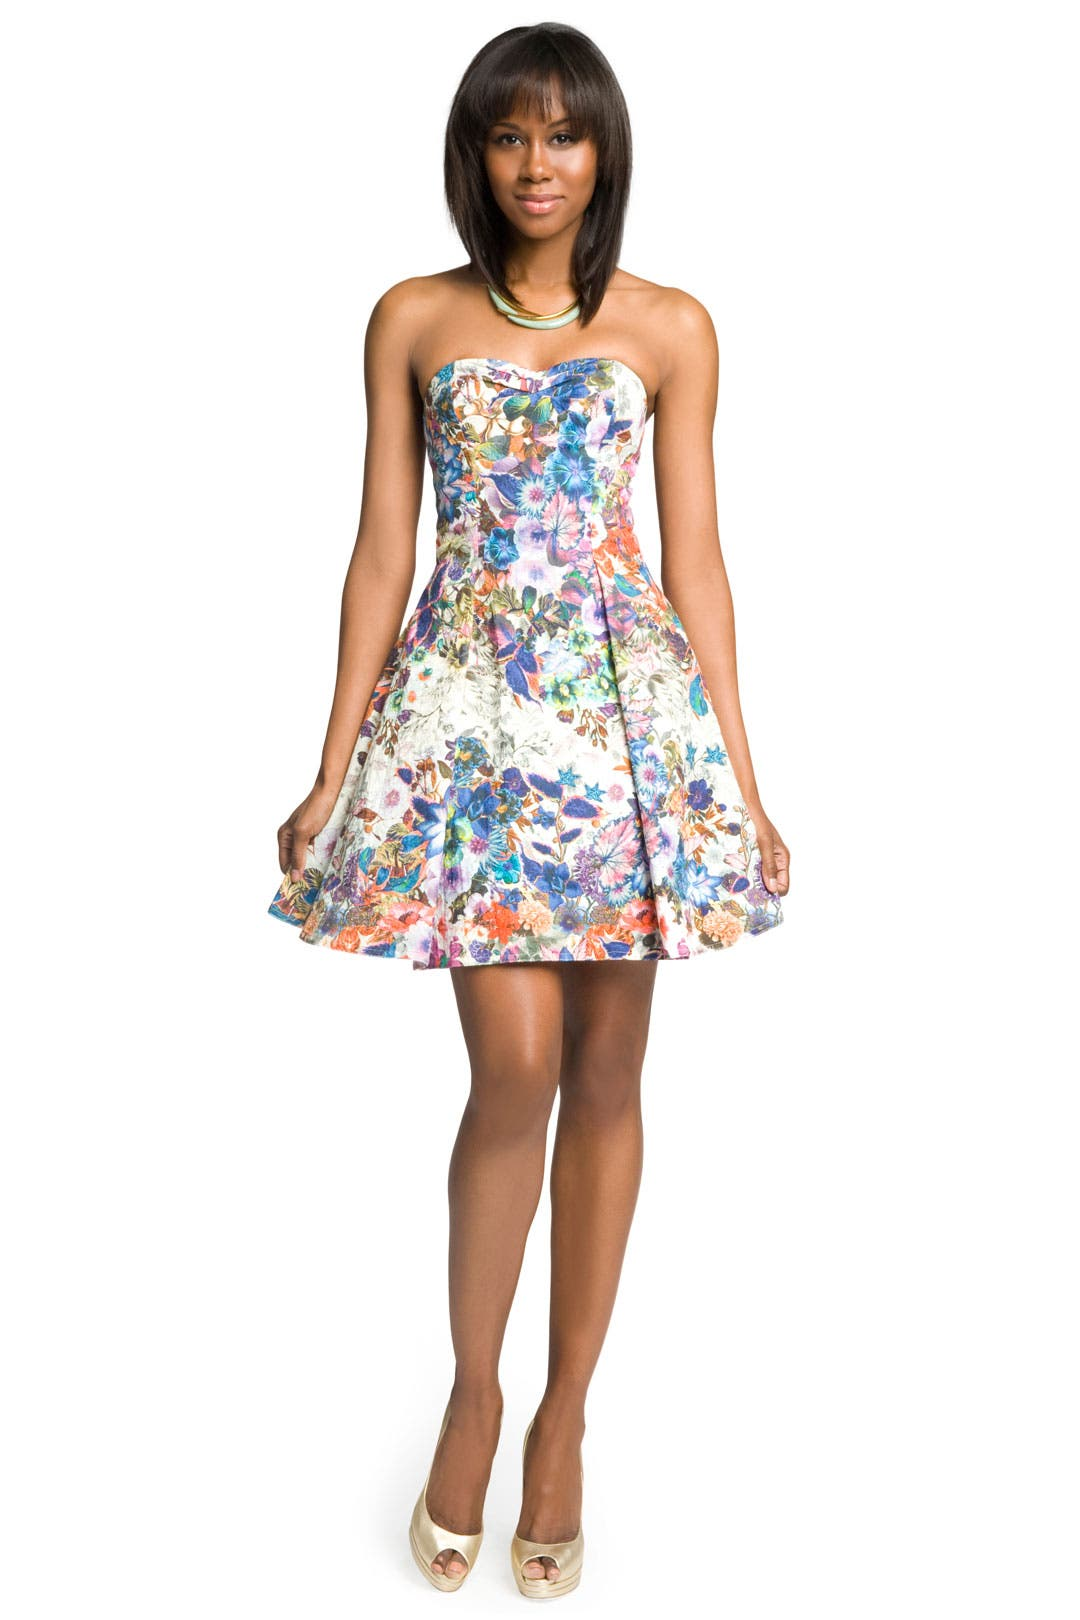 Fanciful Floral Dress by Christian Cota